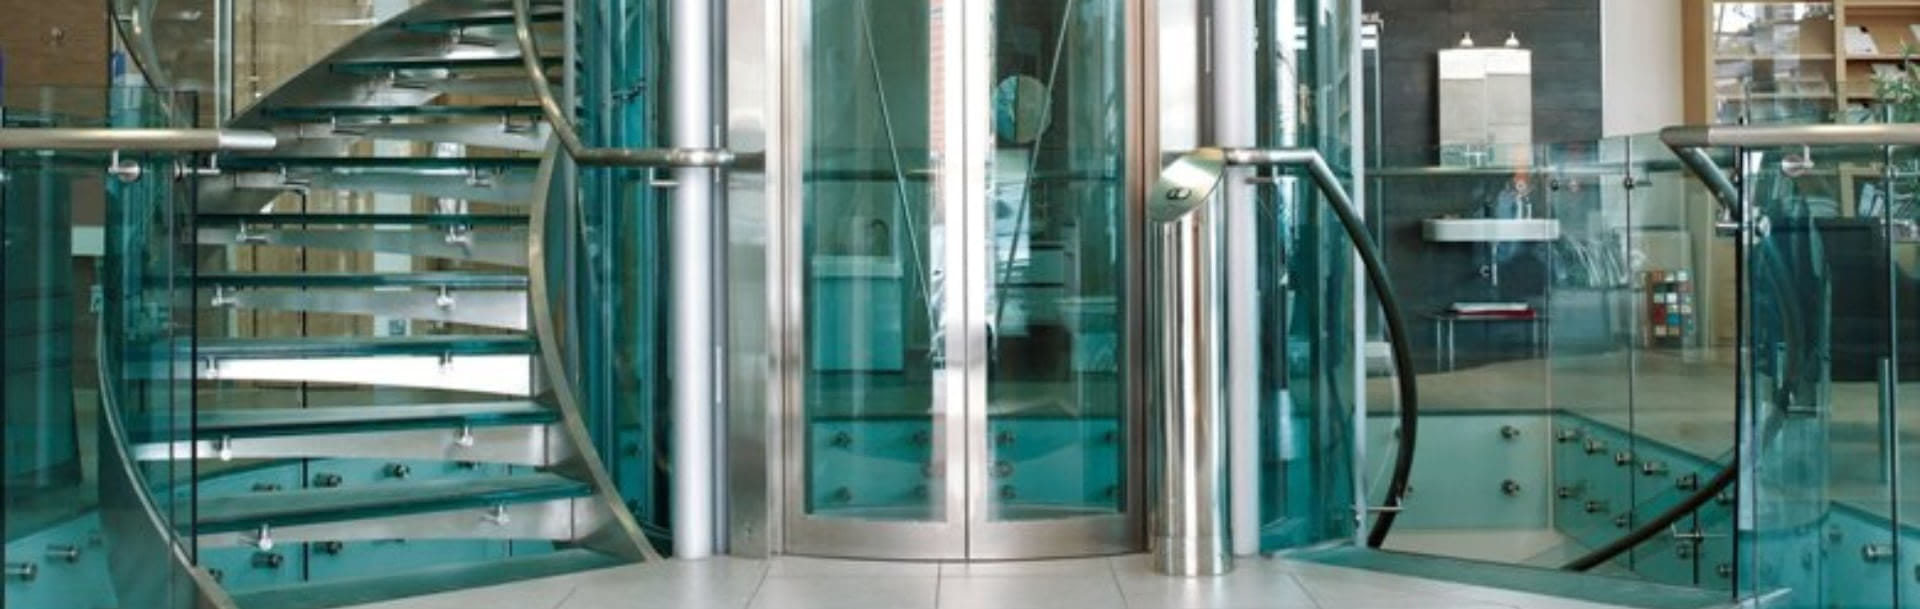 Groffe Elevator Services Ltd - Lifts & Escalators in Gzira